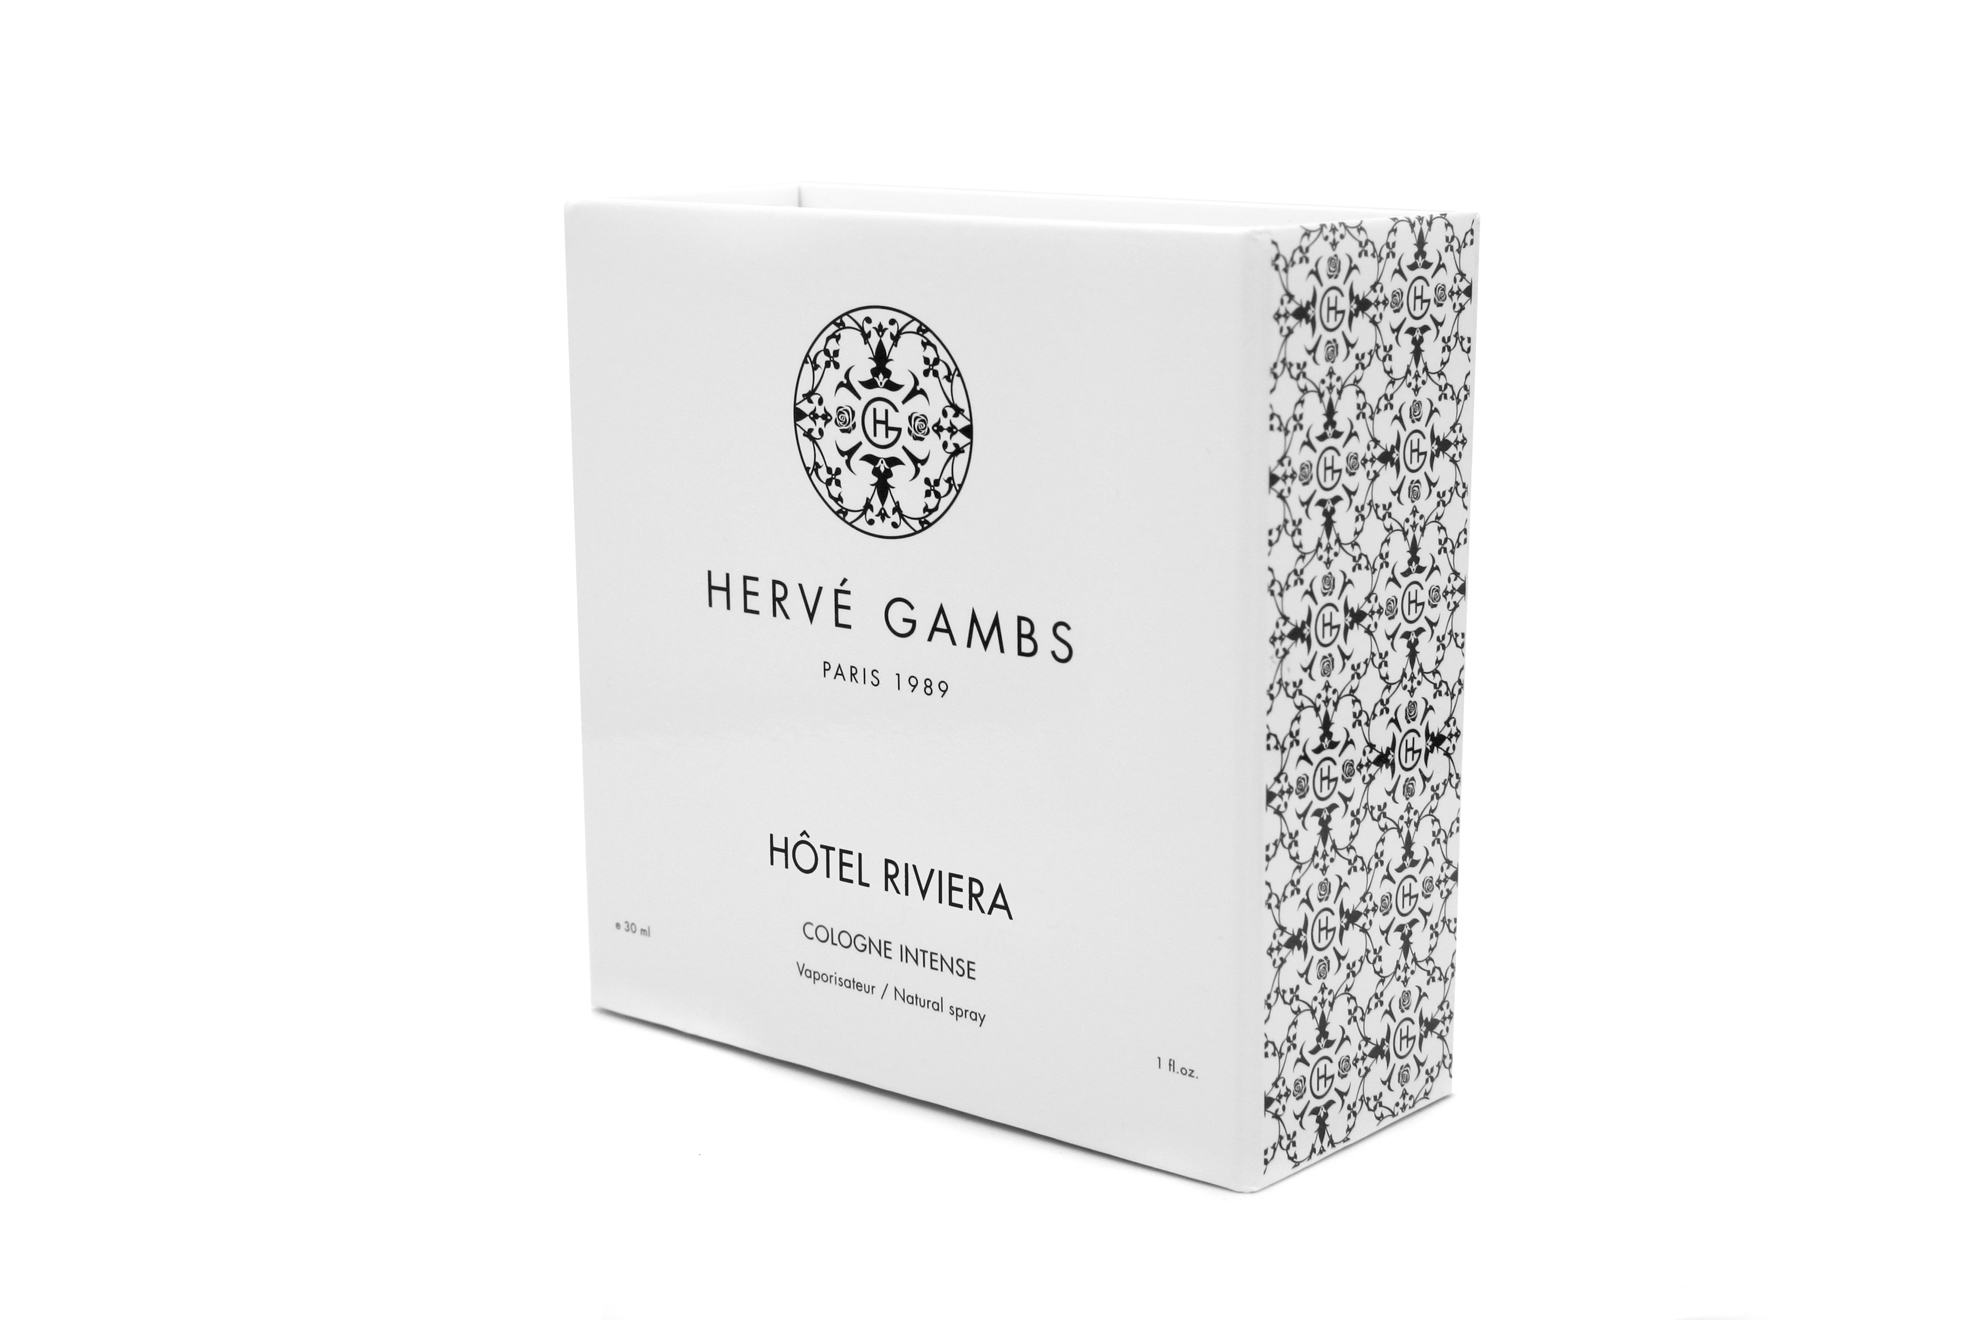 hervé gambs packaging parfum communication understüd